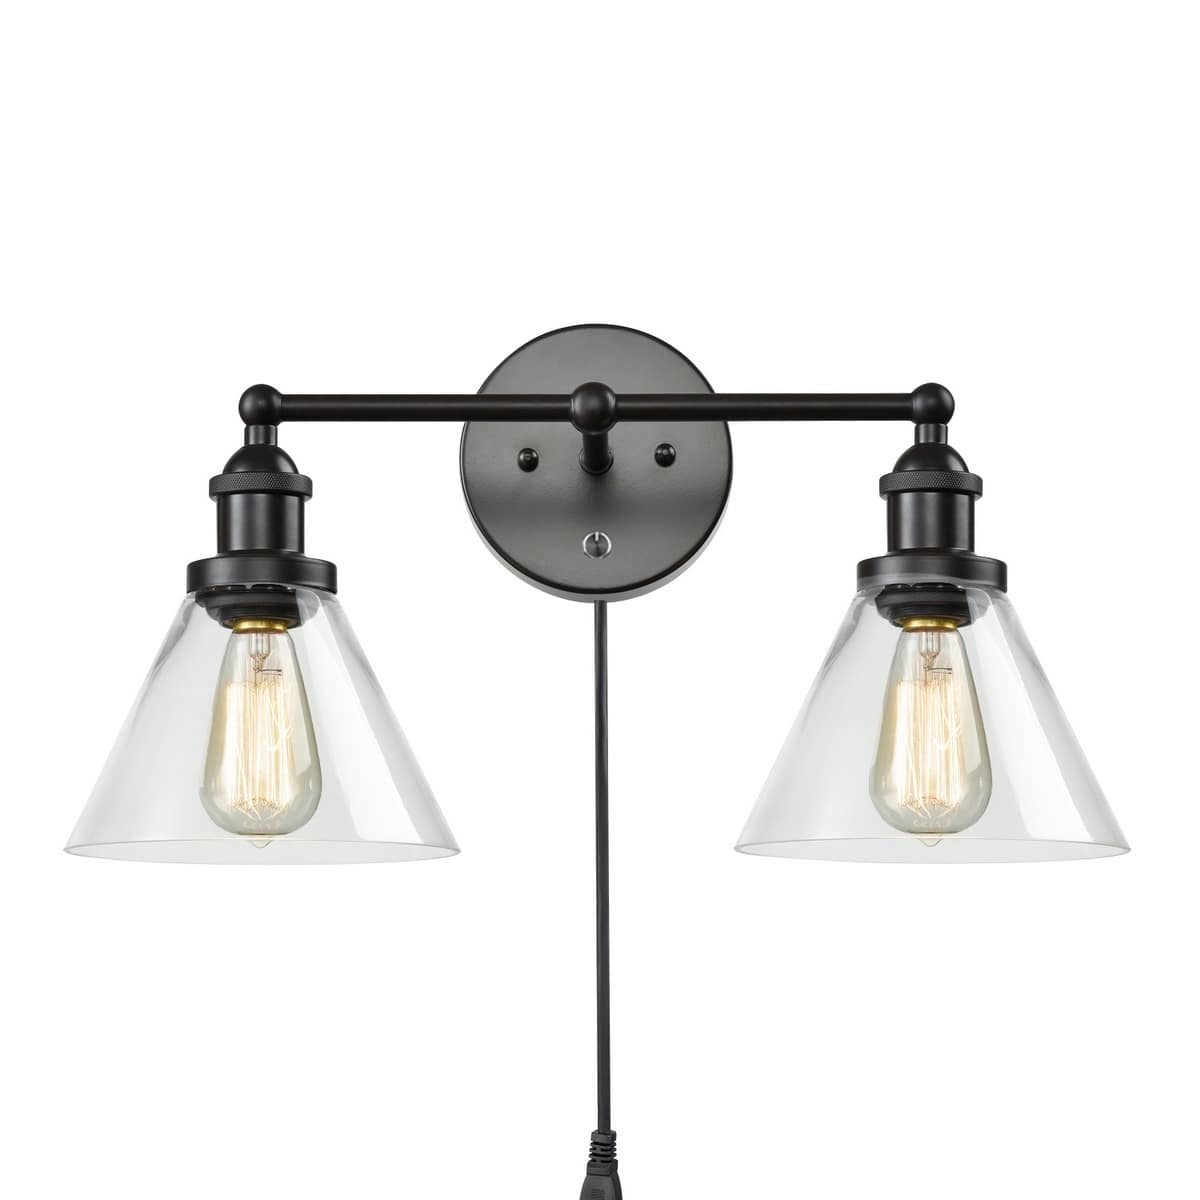 Oil Rubbed Bronze Plug in Wall Lights 2 Light Glass Sconce